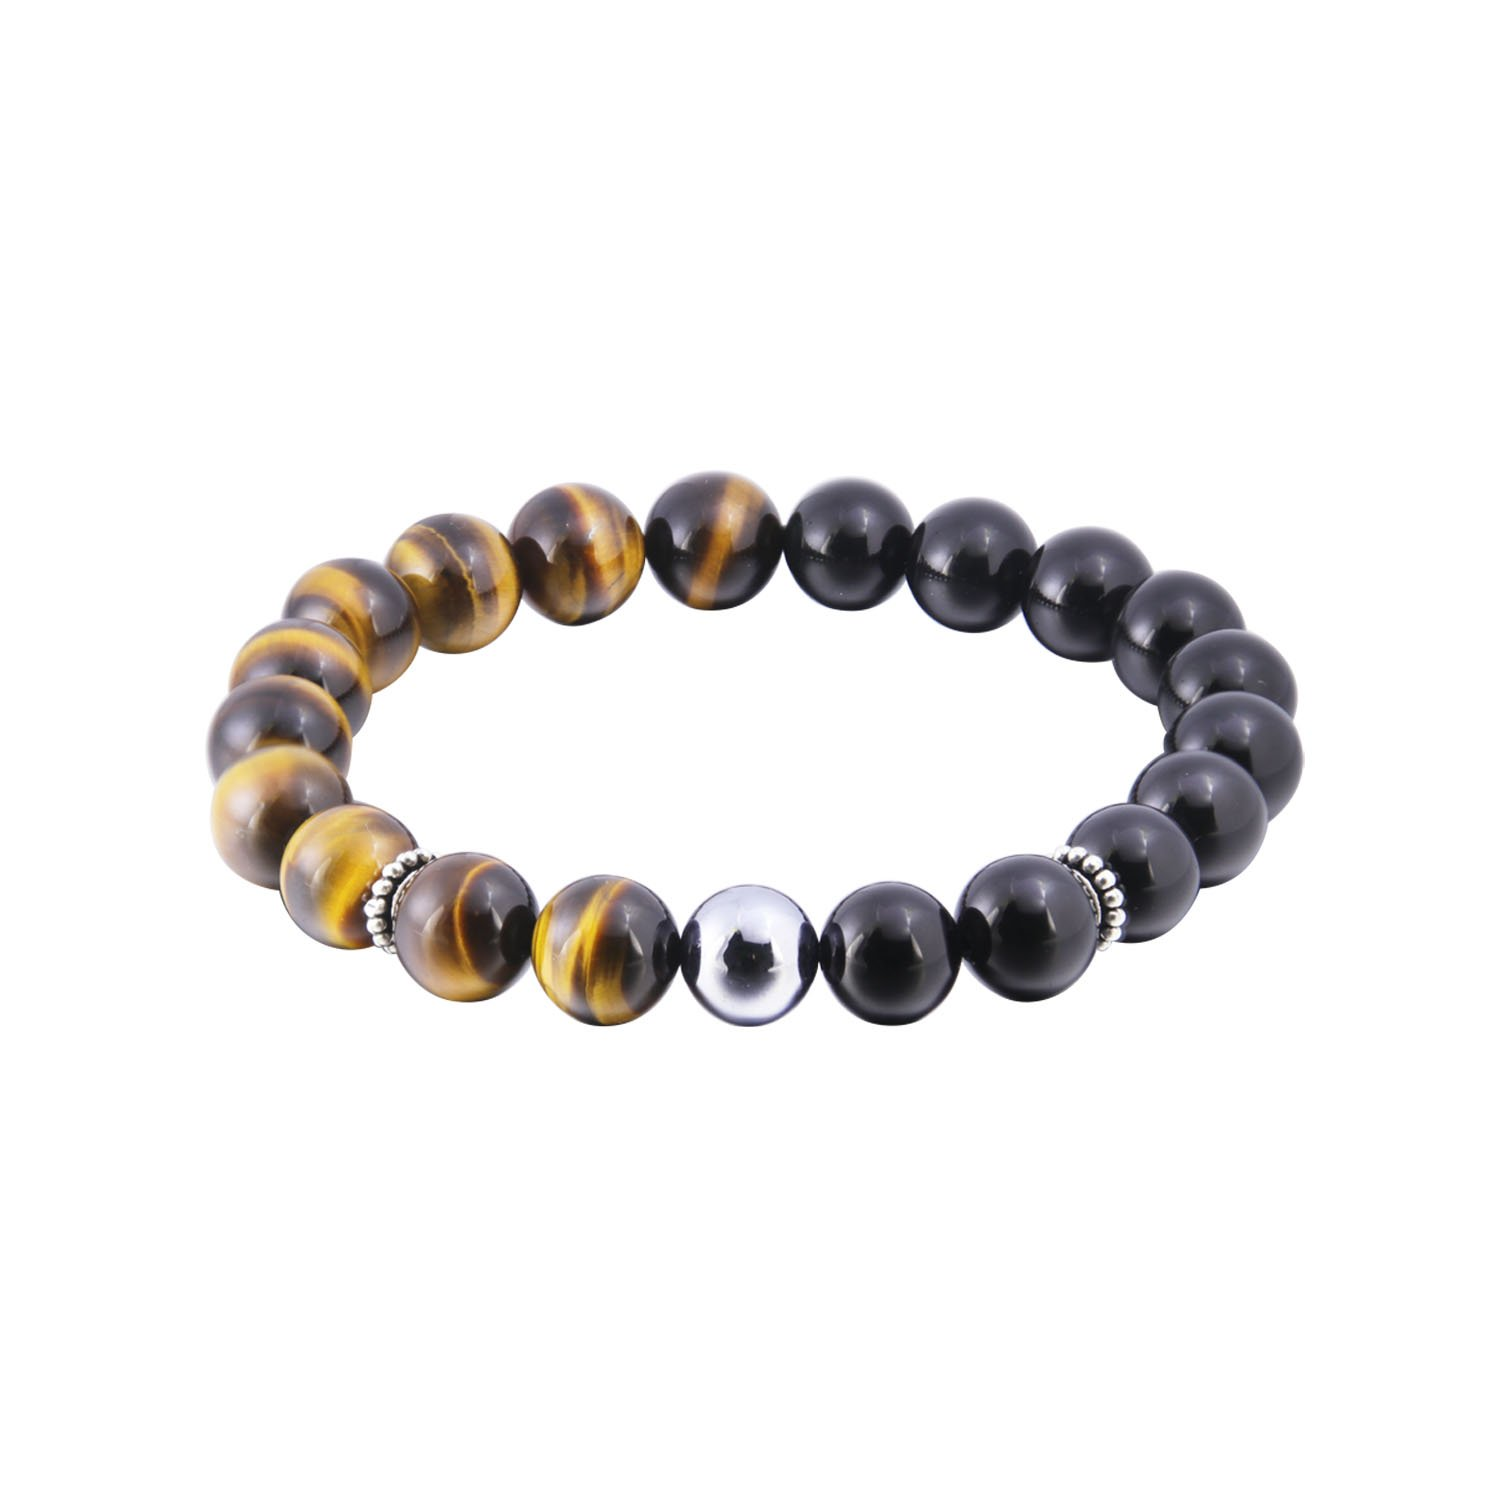 spiritual p jewelry stones for positive healing balance reiki soothing chakra free br product focus bracelet anxiety multi